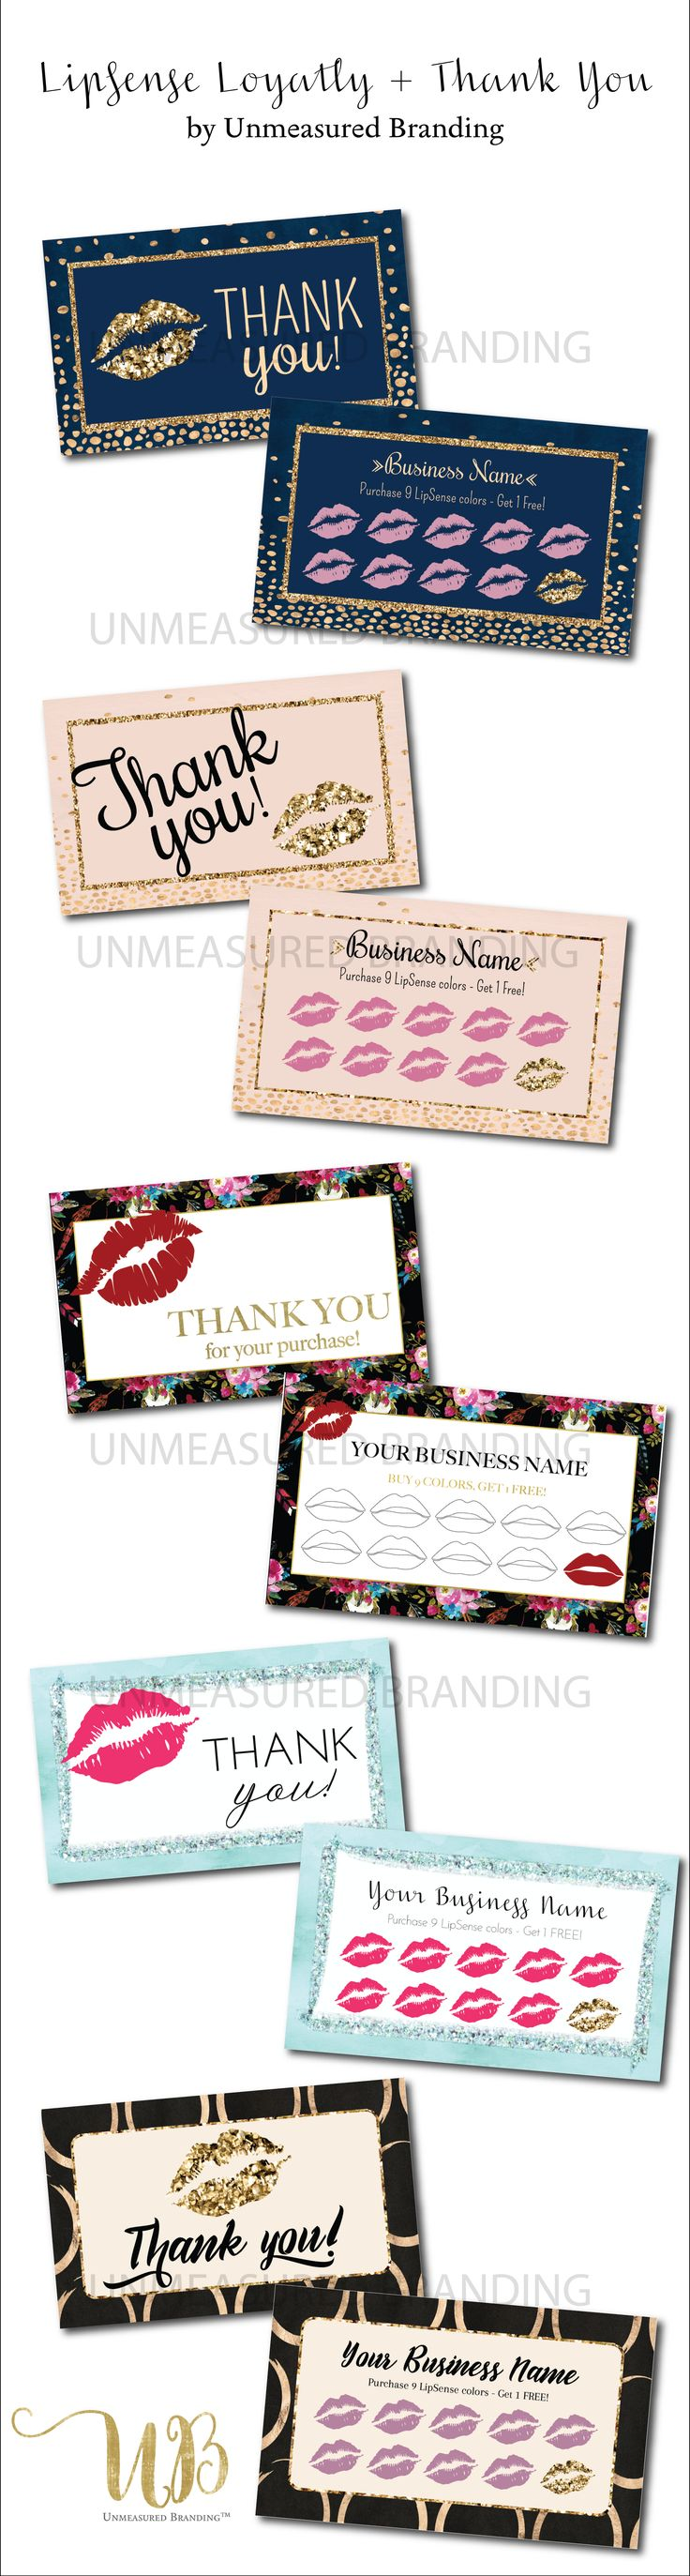 LipSense Loyalty Cards LipSense Thank You Cards LipSense Printables SeneGence Printables LipSense Distributor